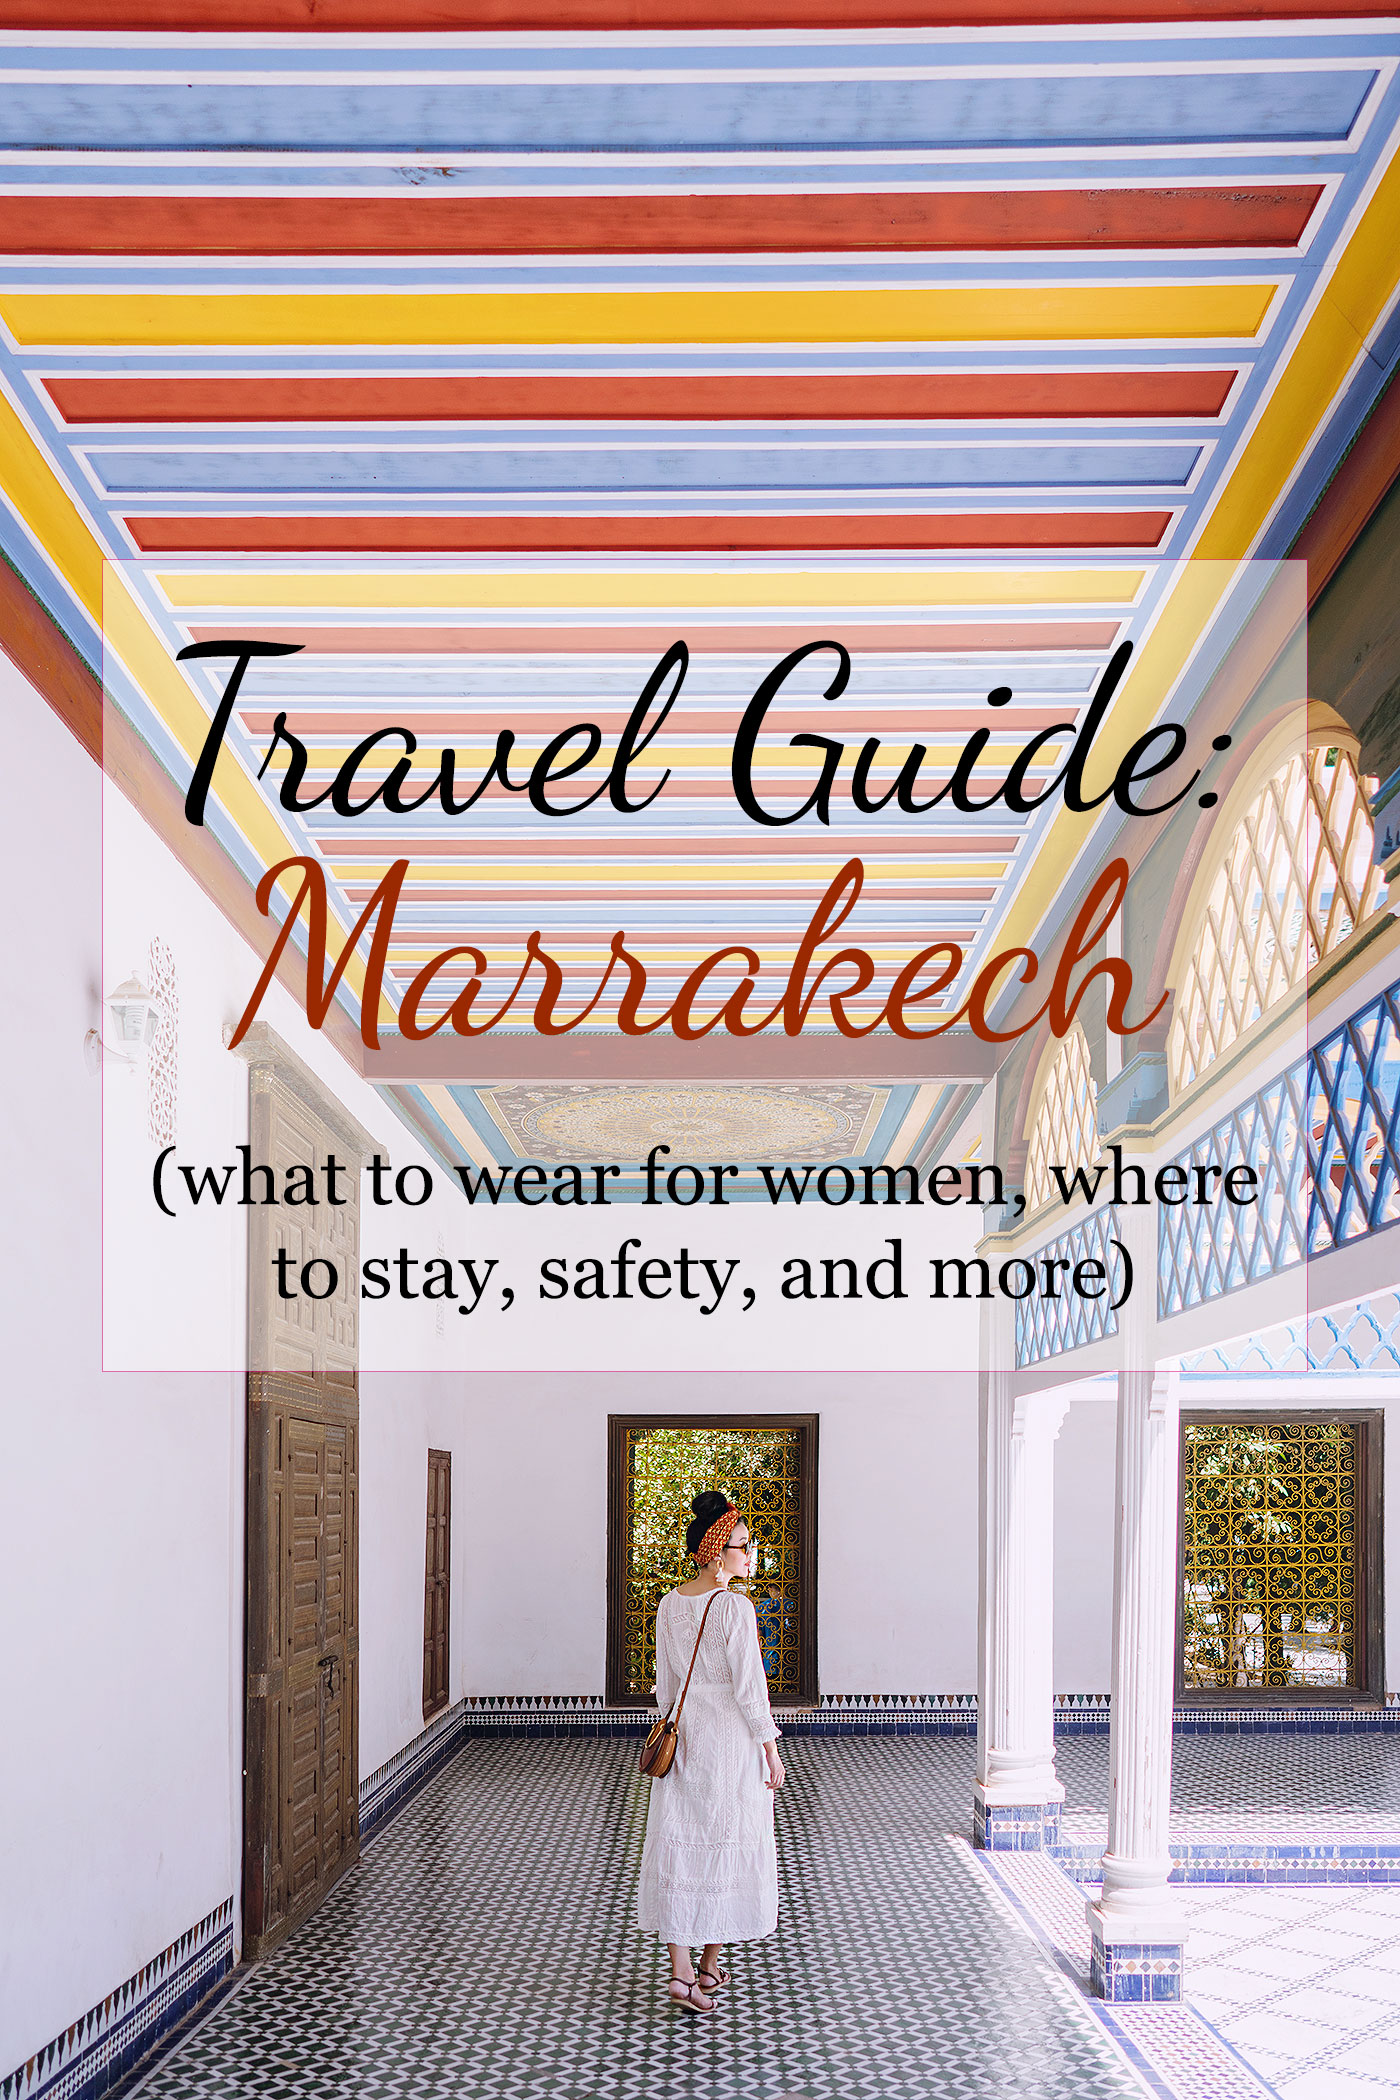 Marrakech Morocco travel guide tips